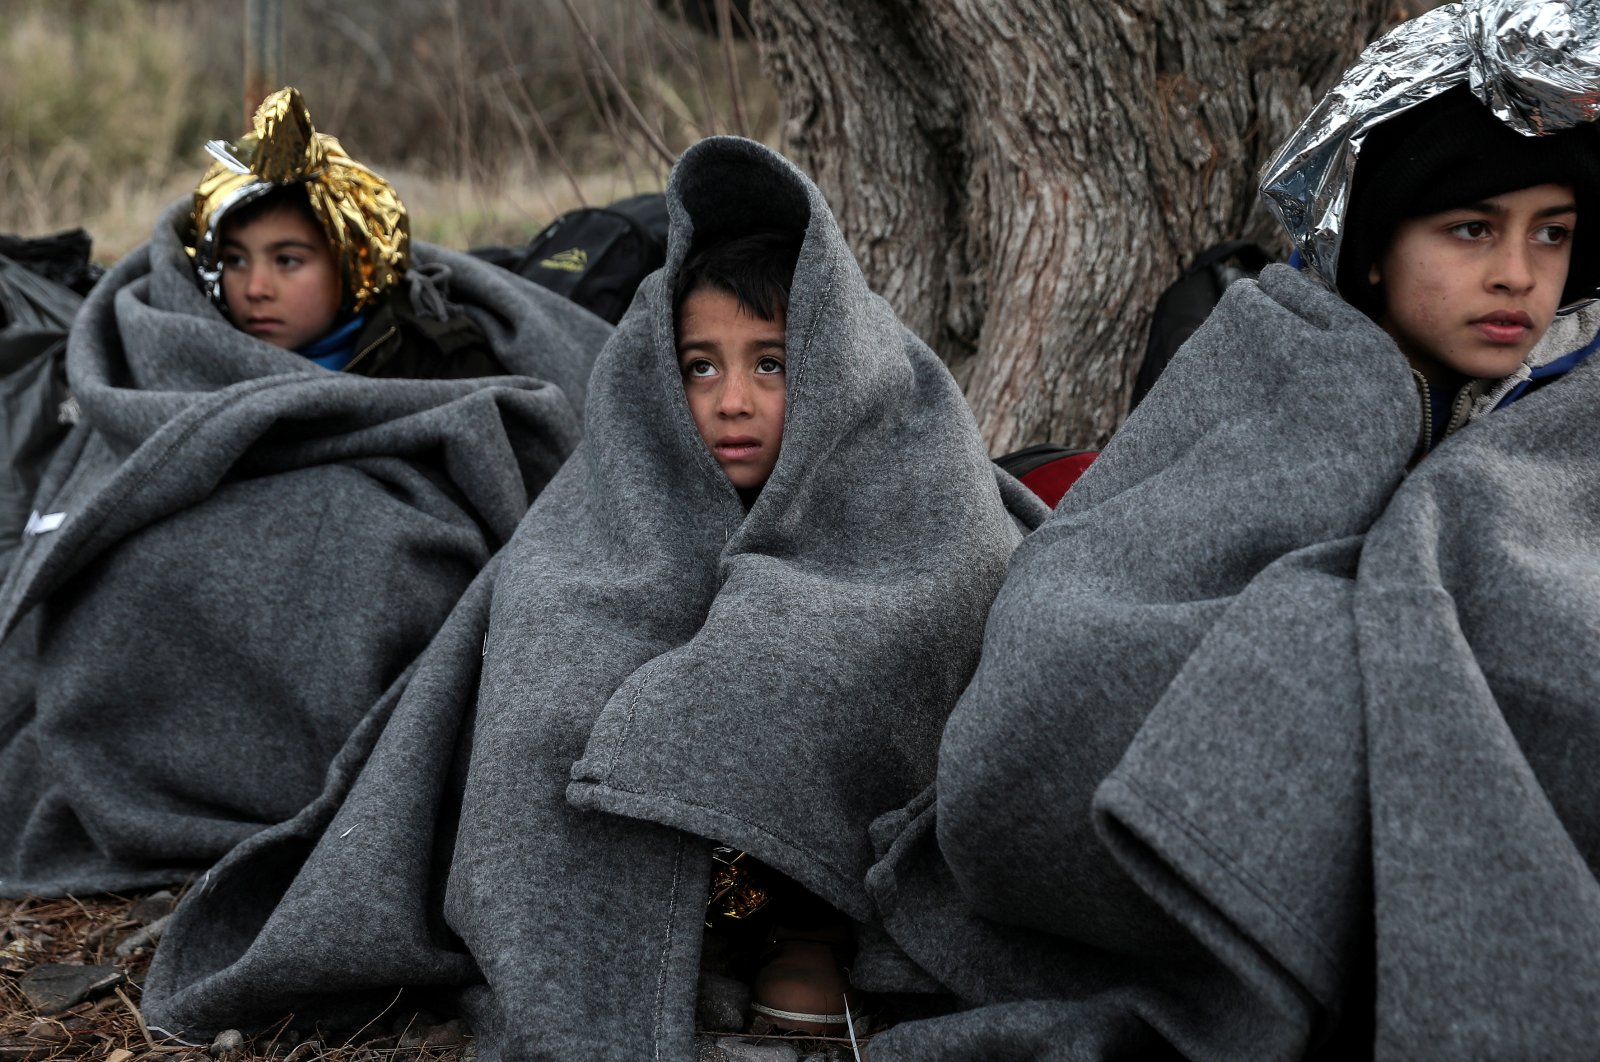 Children are covered with blankets and thermal blankets after migrants from Afghanistan arrived on a dinghy on a beach near the village of Skala Sikamias on the island of Lesbos, Feb. 28, 2020. REUTERS